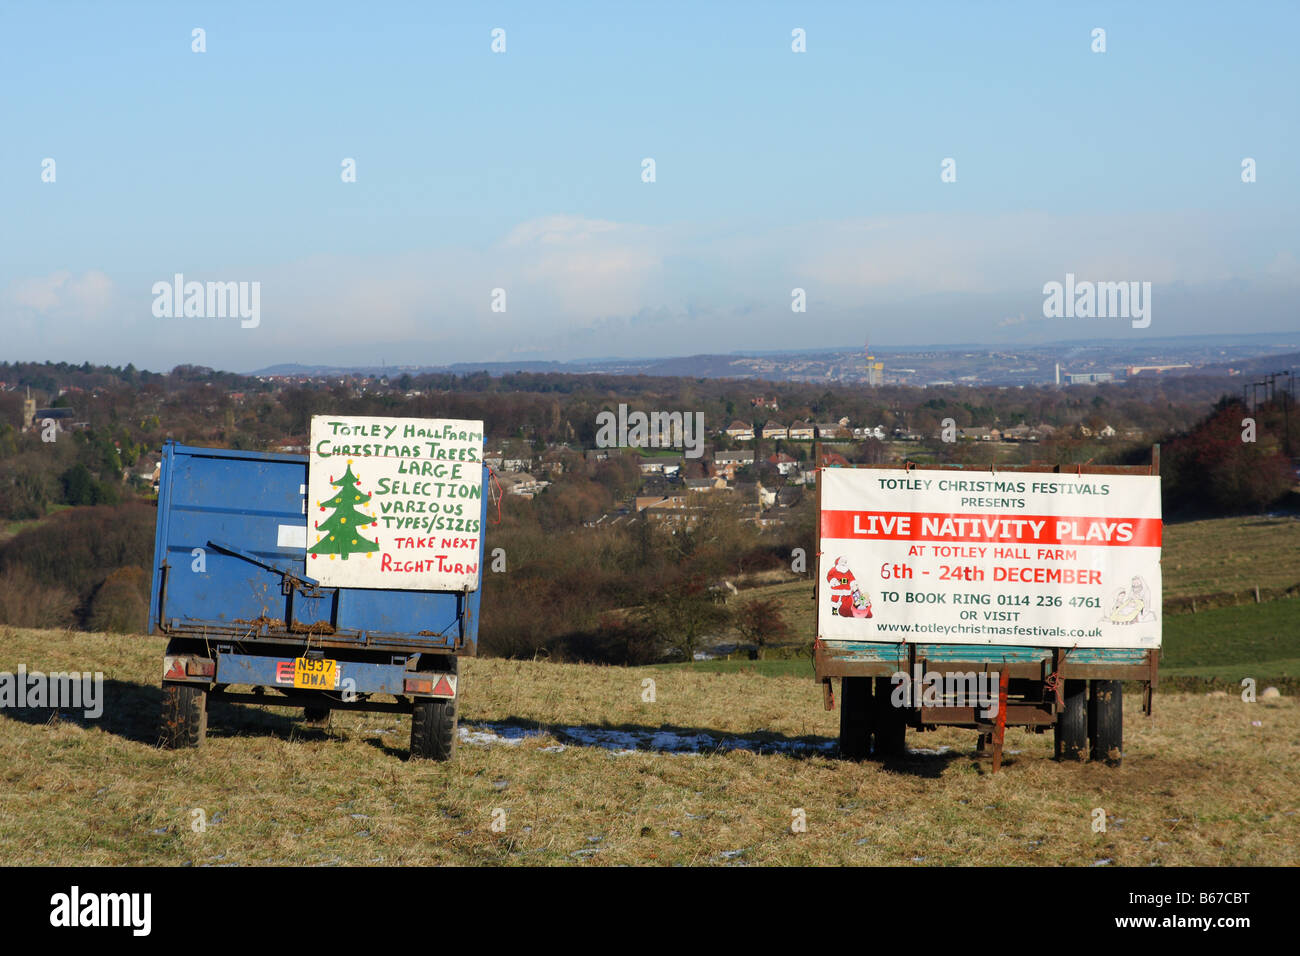 Trailers advertising Christmas trees for sale in a field in the U.K. - Stock Image